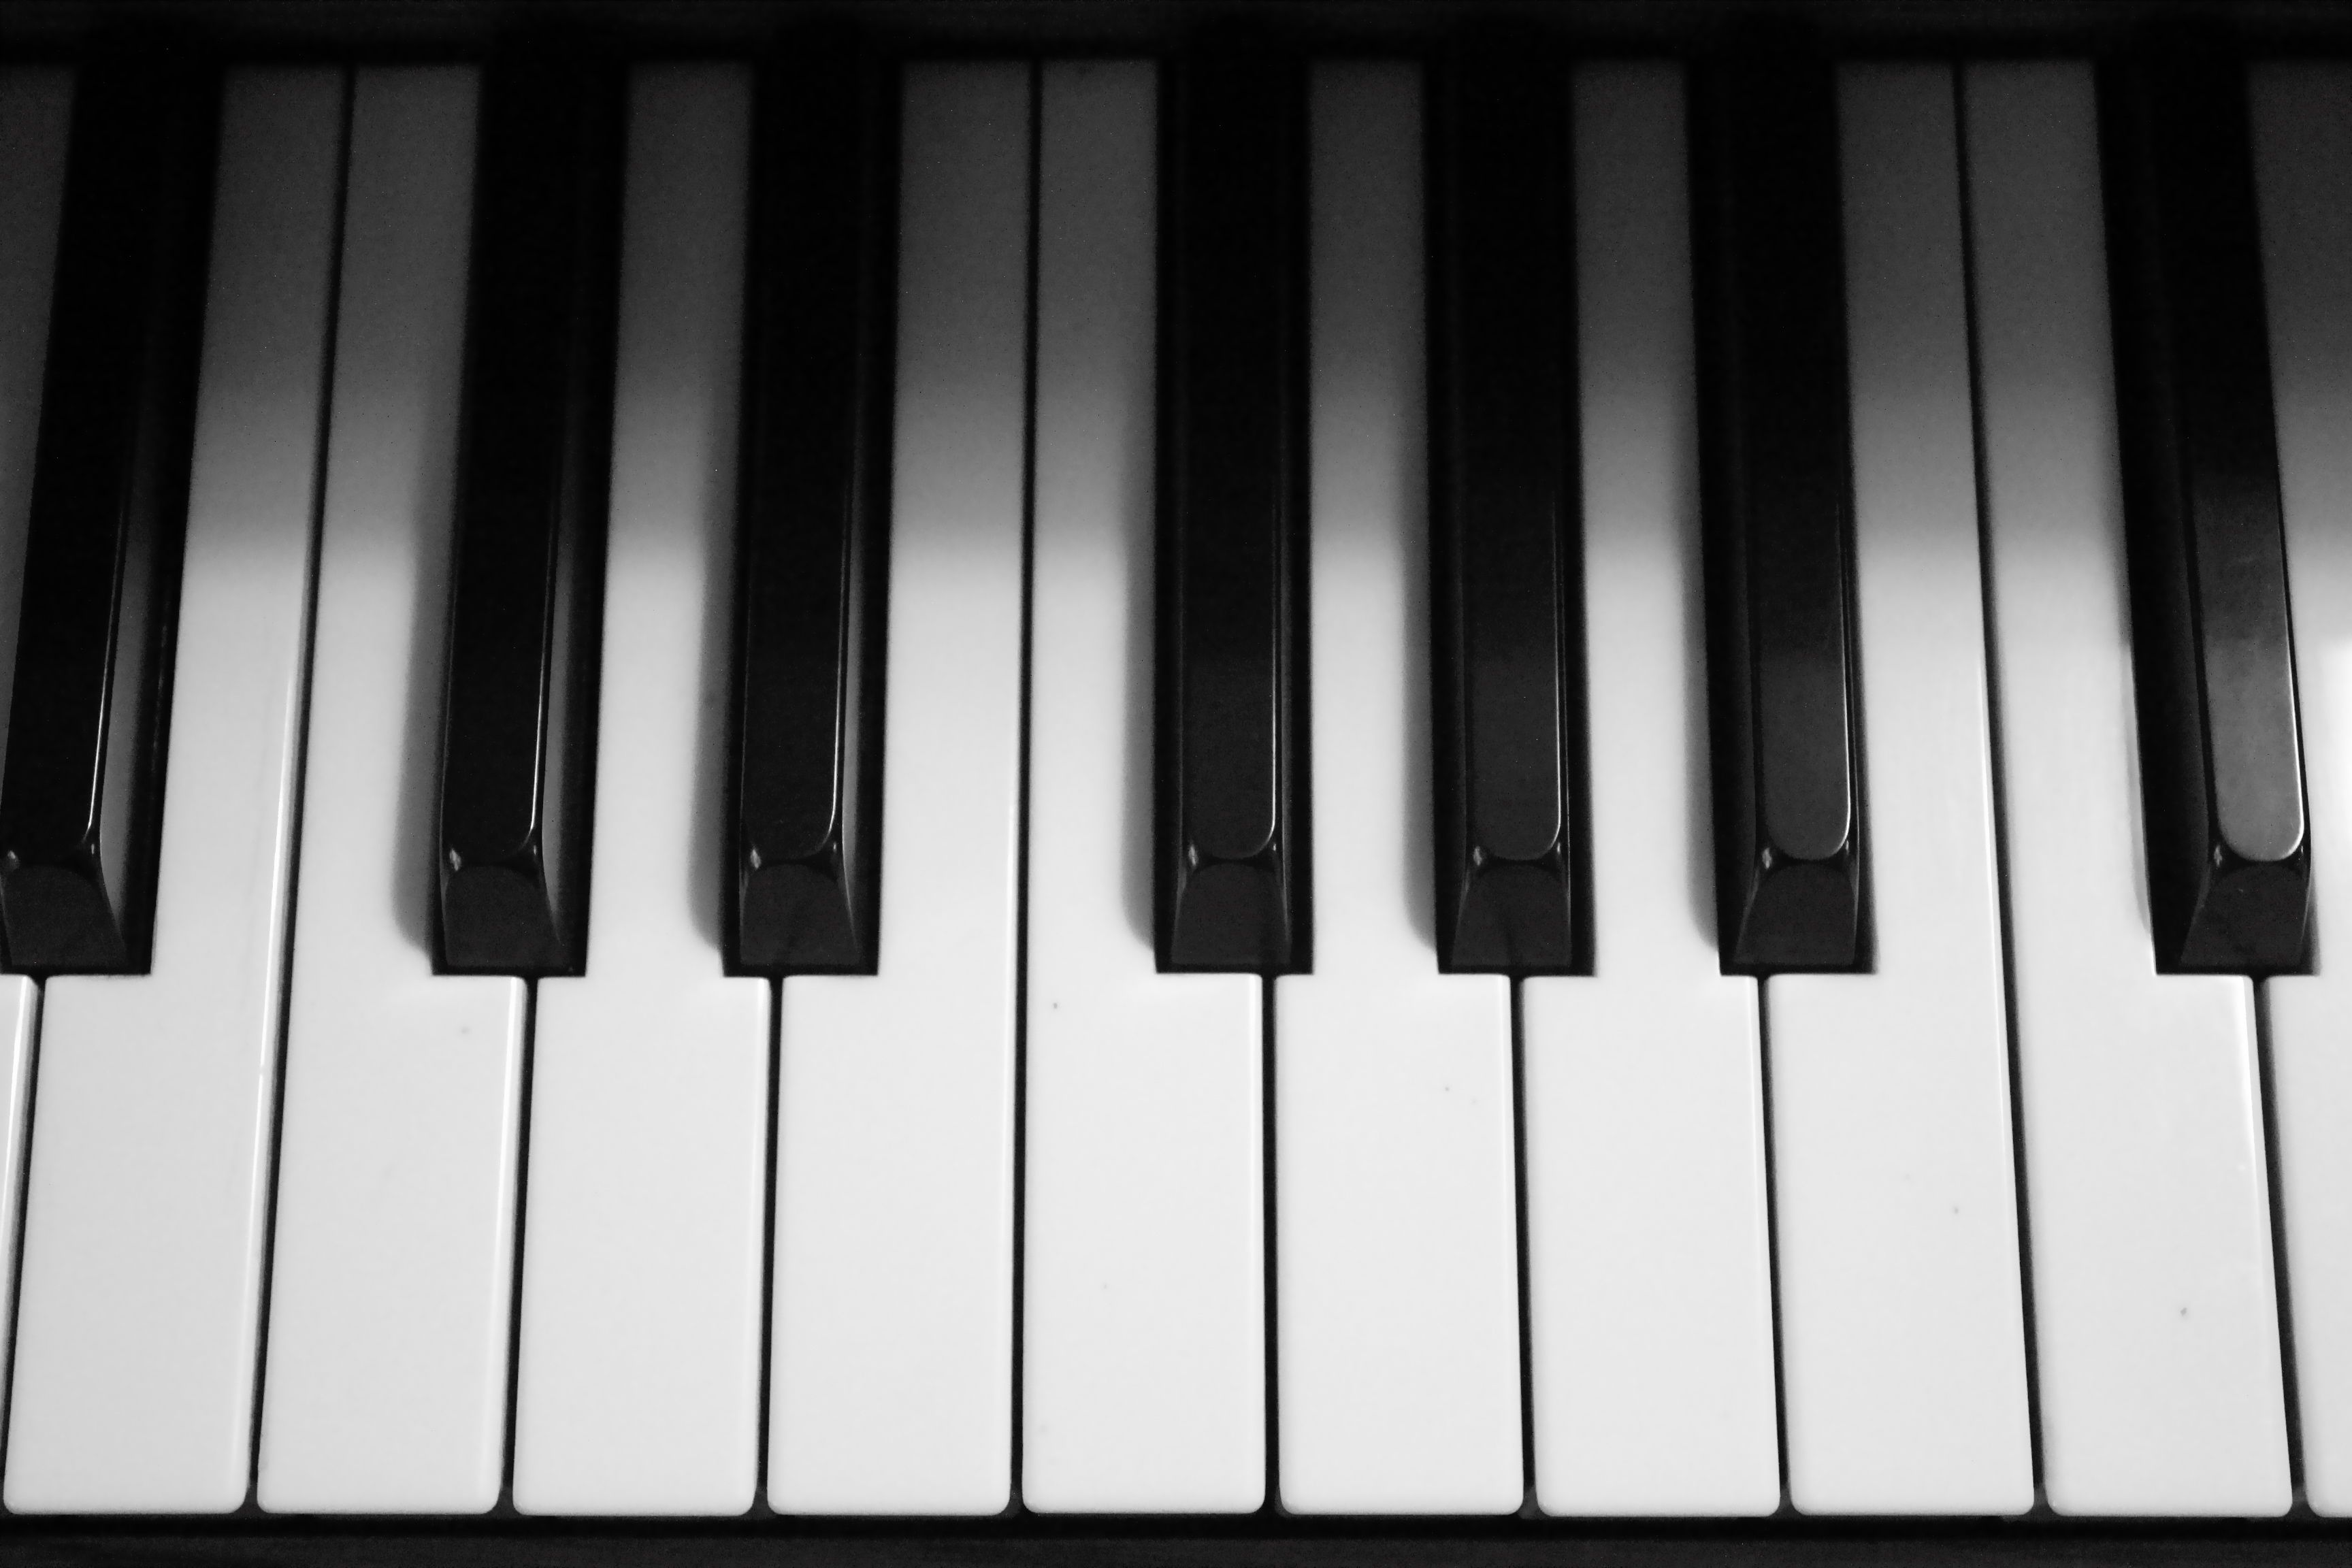 Piano keys black and white photography